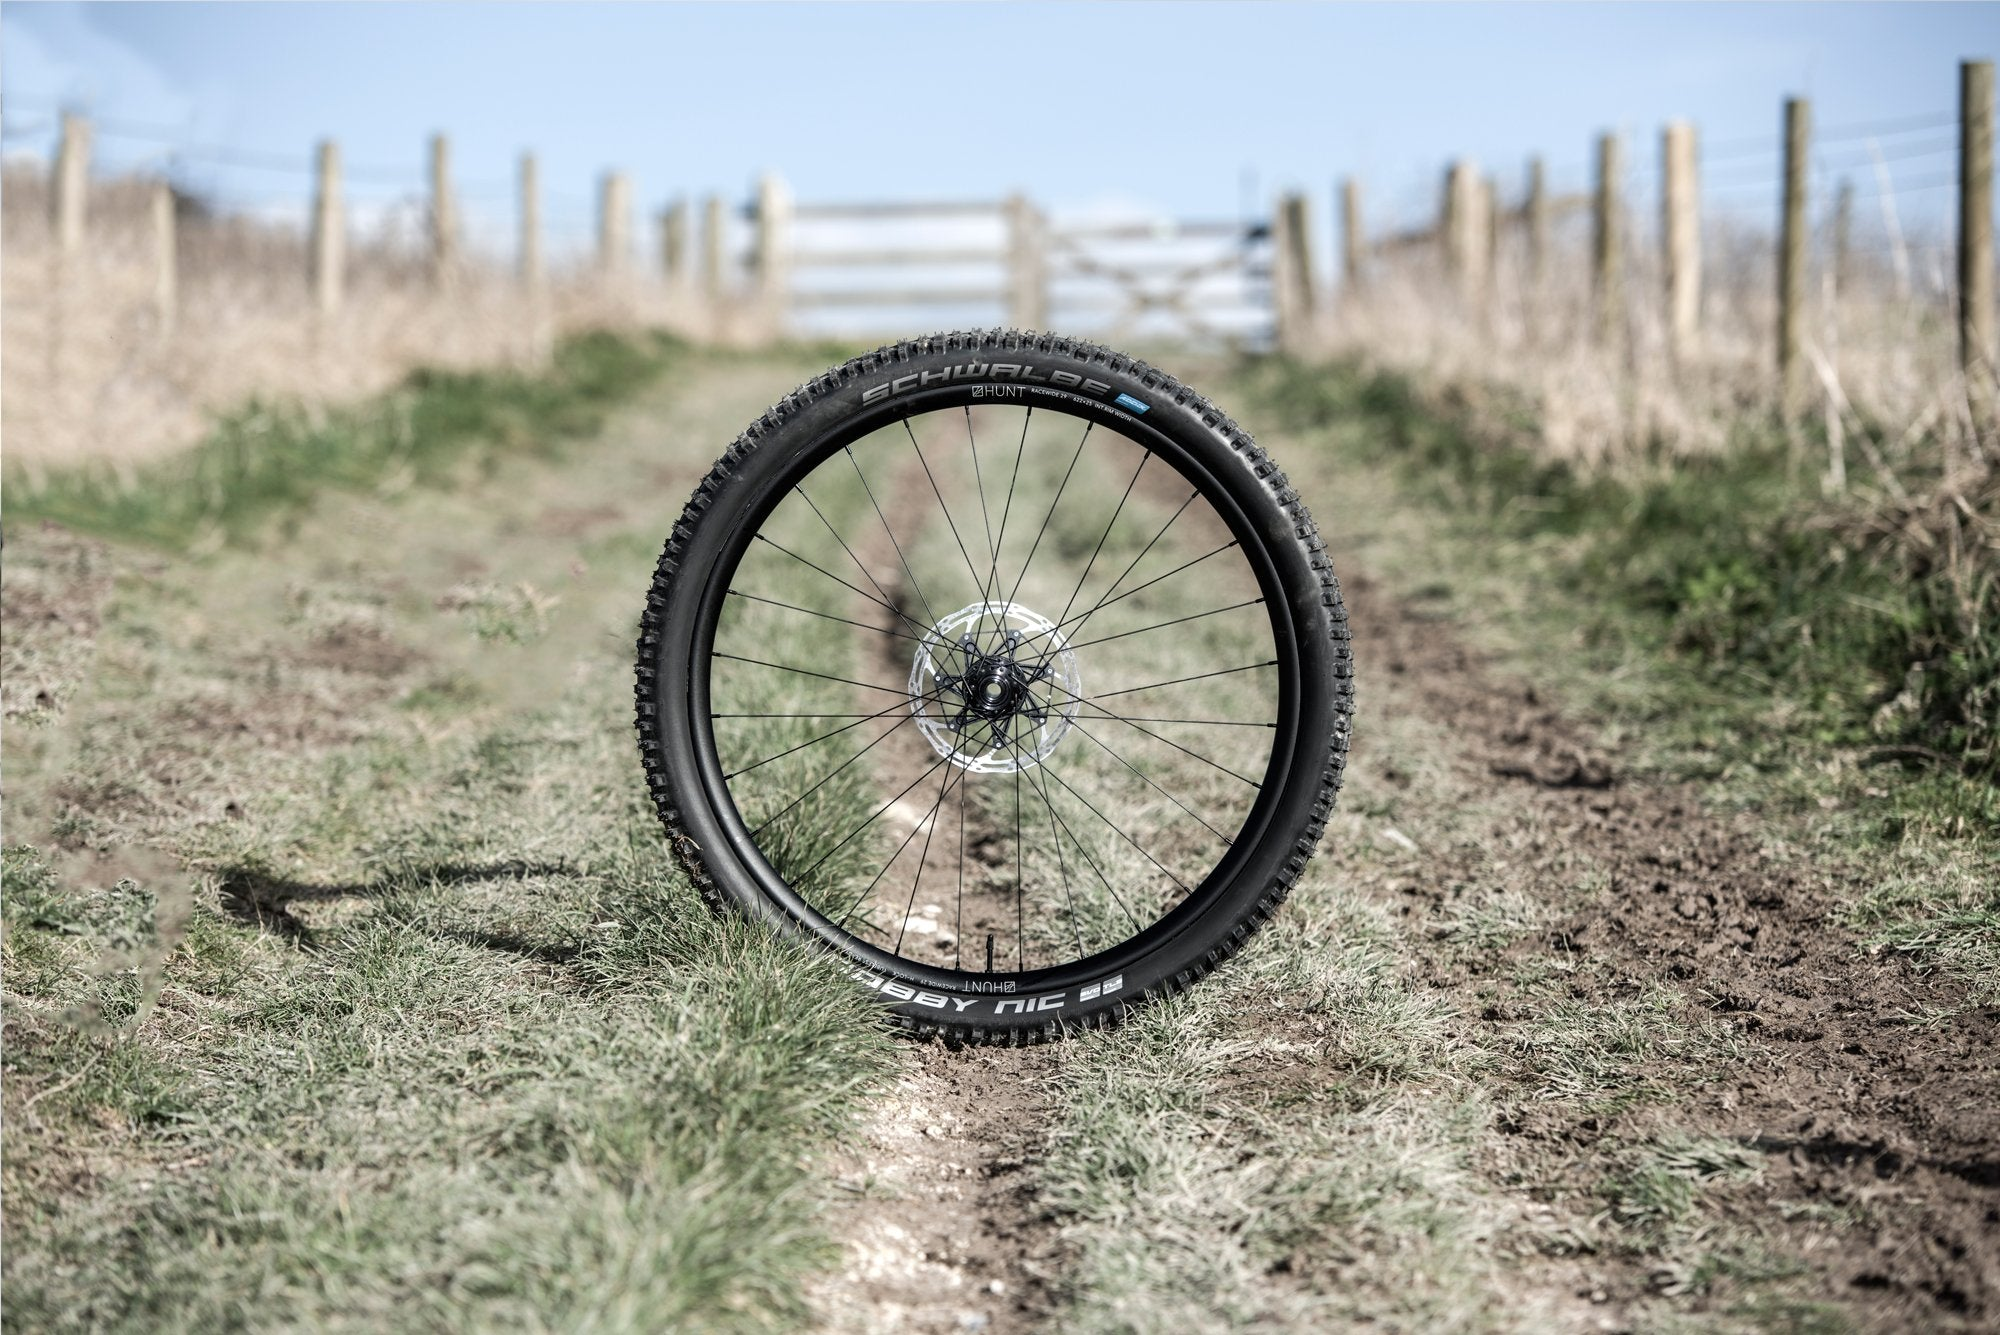 <h1>Tubeless Tires Fitted</h1><i>Gain the most out of your riding with a set of tubeless Maxxis or Schwalbe Tires fitted and set up tubeless with sealant ready to roll straight out of the box.</i>